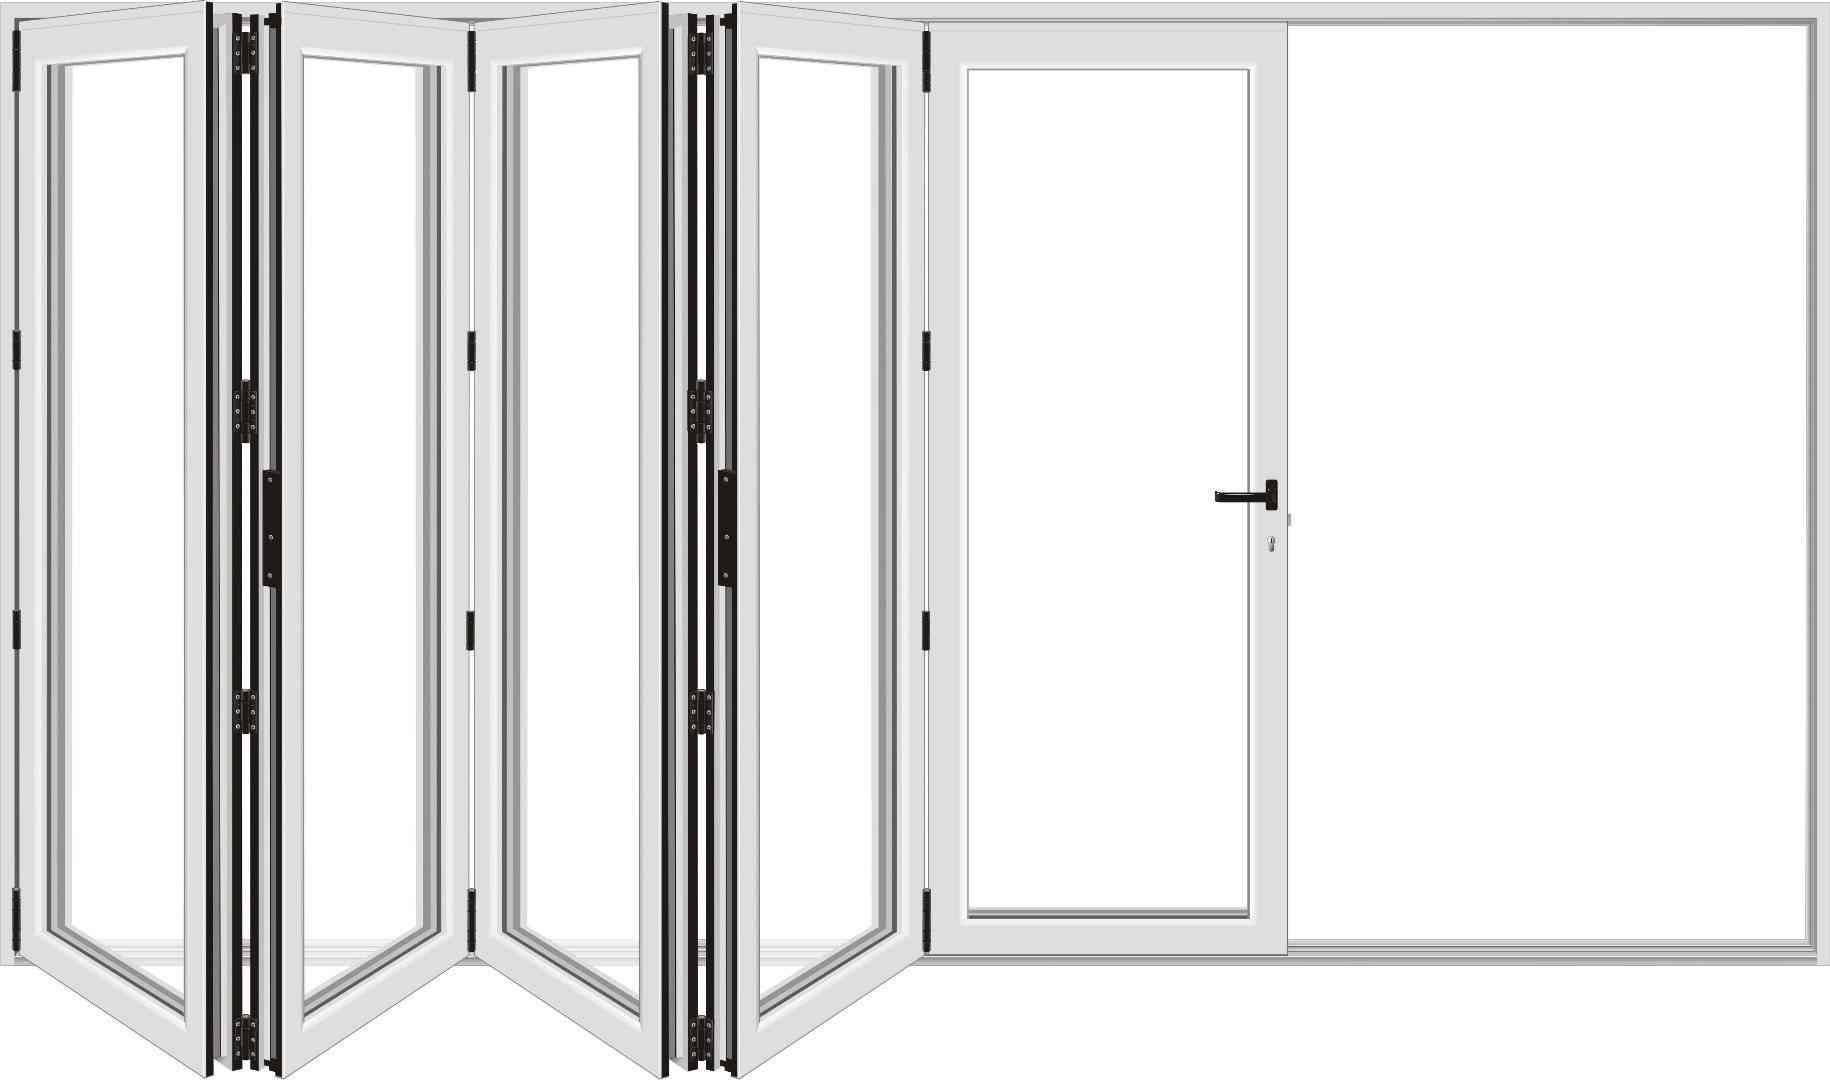 schuco-doors-London-schuco-sliding-doors-London